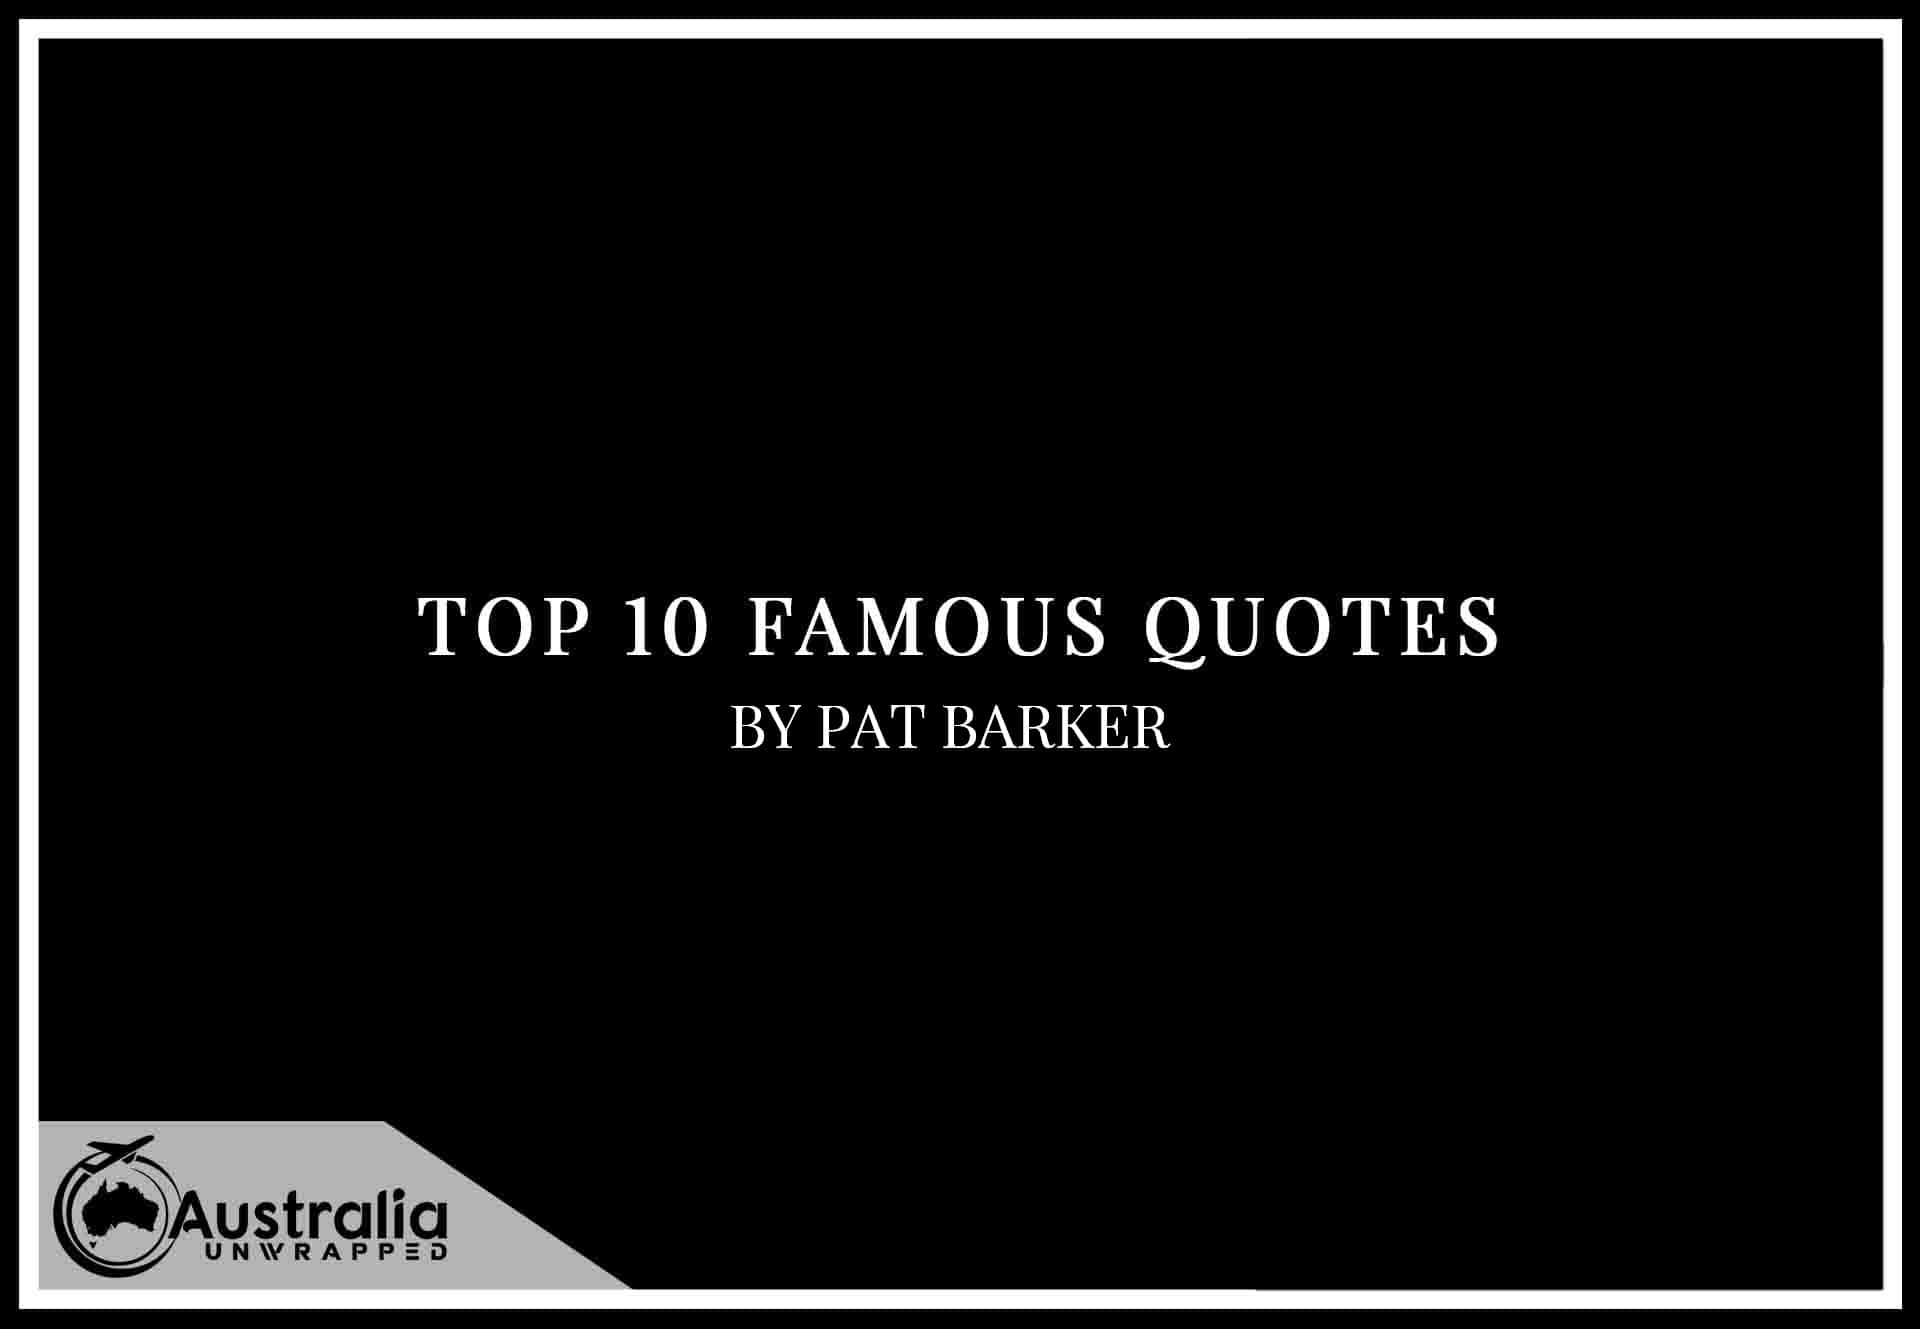 Top 10 Famous Quotes by Author Pat Barker